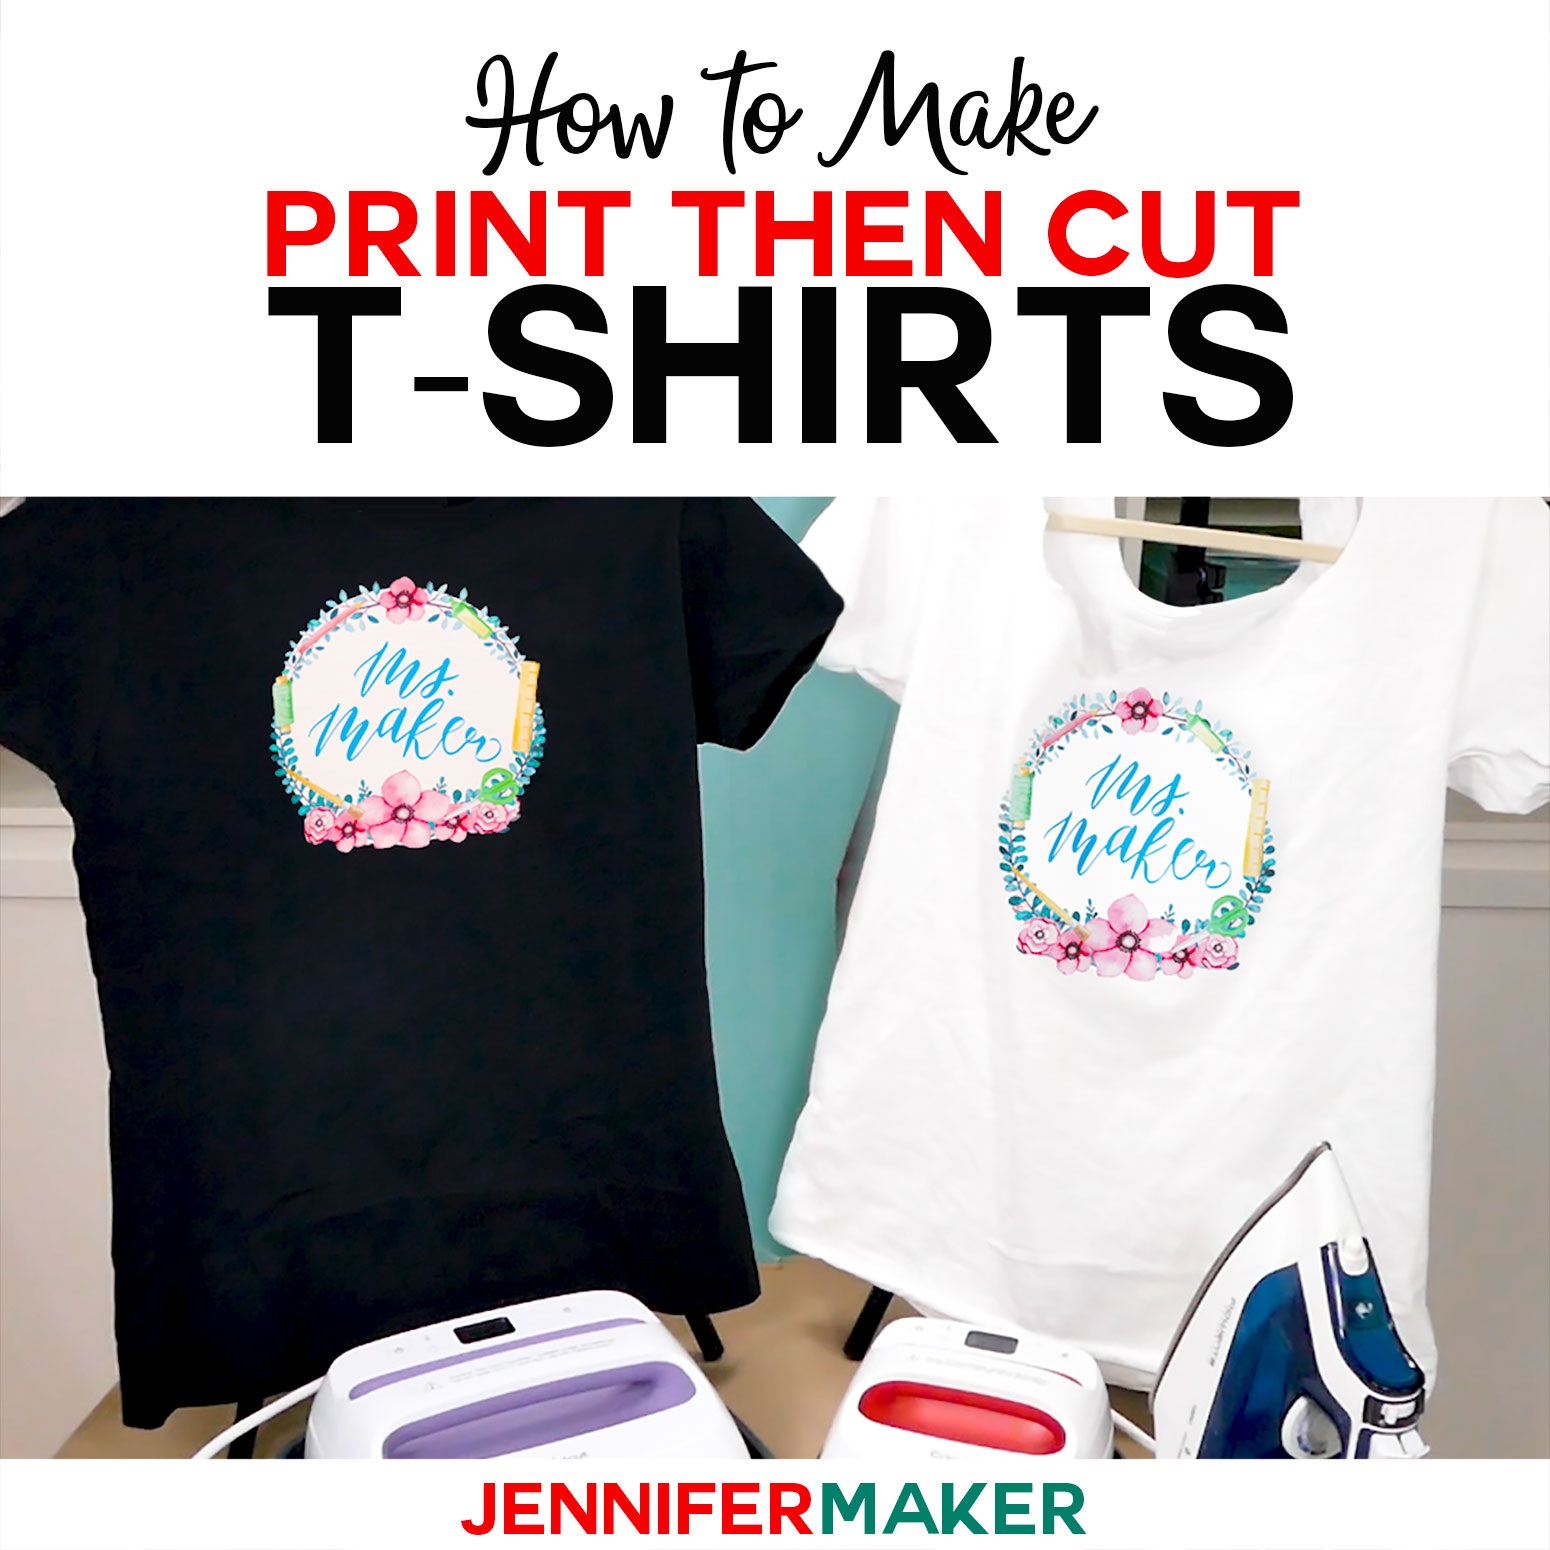 photograph about Best Printable Heat Transfer Vinyl referred to as Print Then Minimize Cricut Go T-Shirts - Jennifer Company